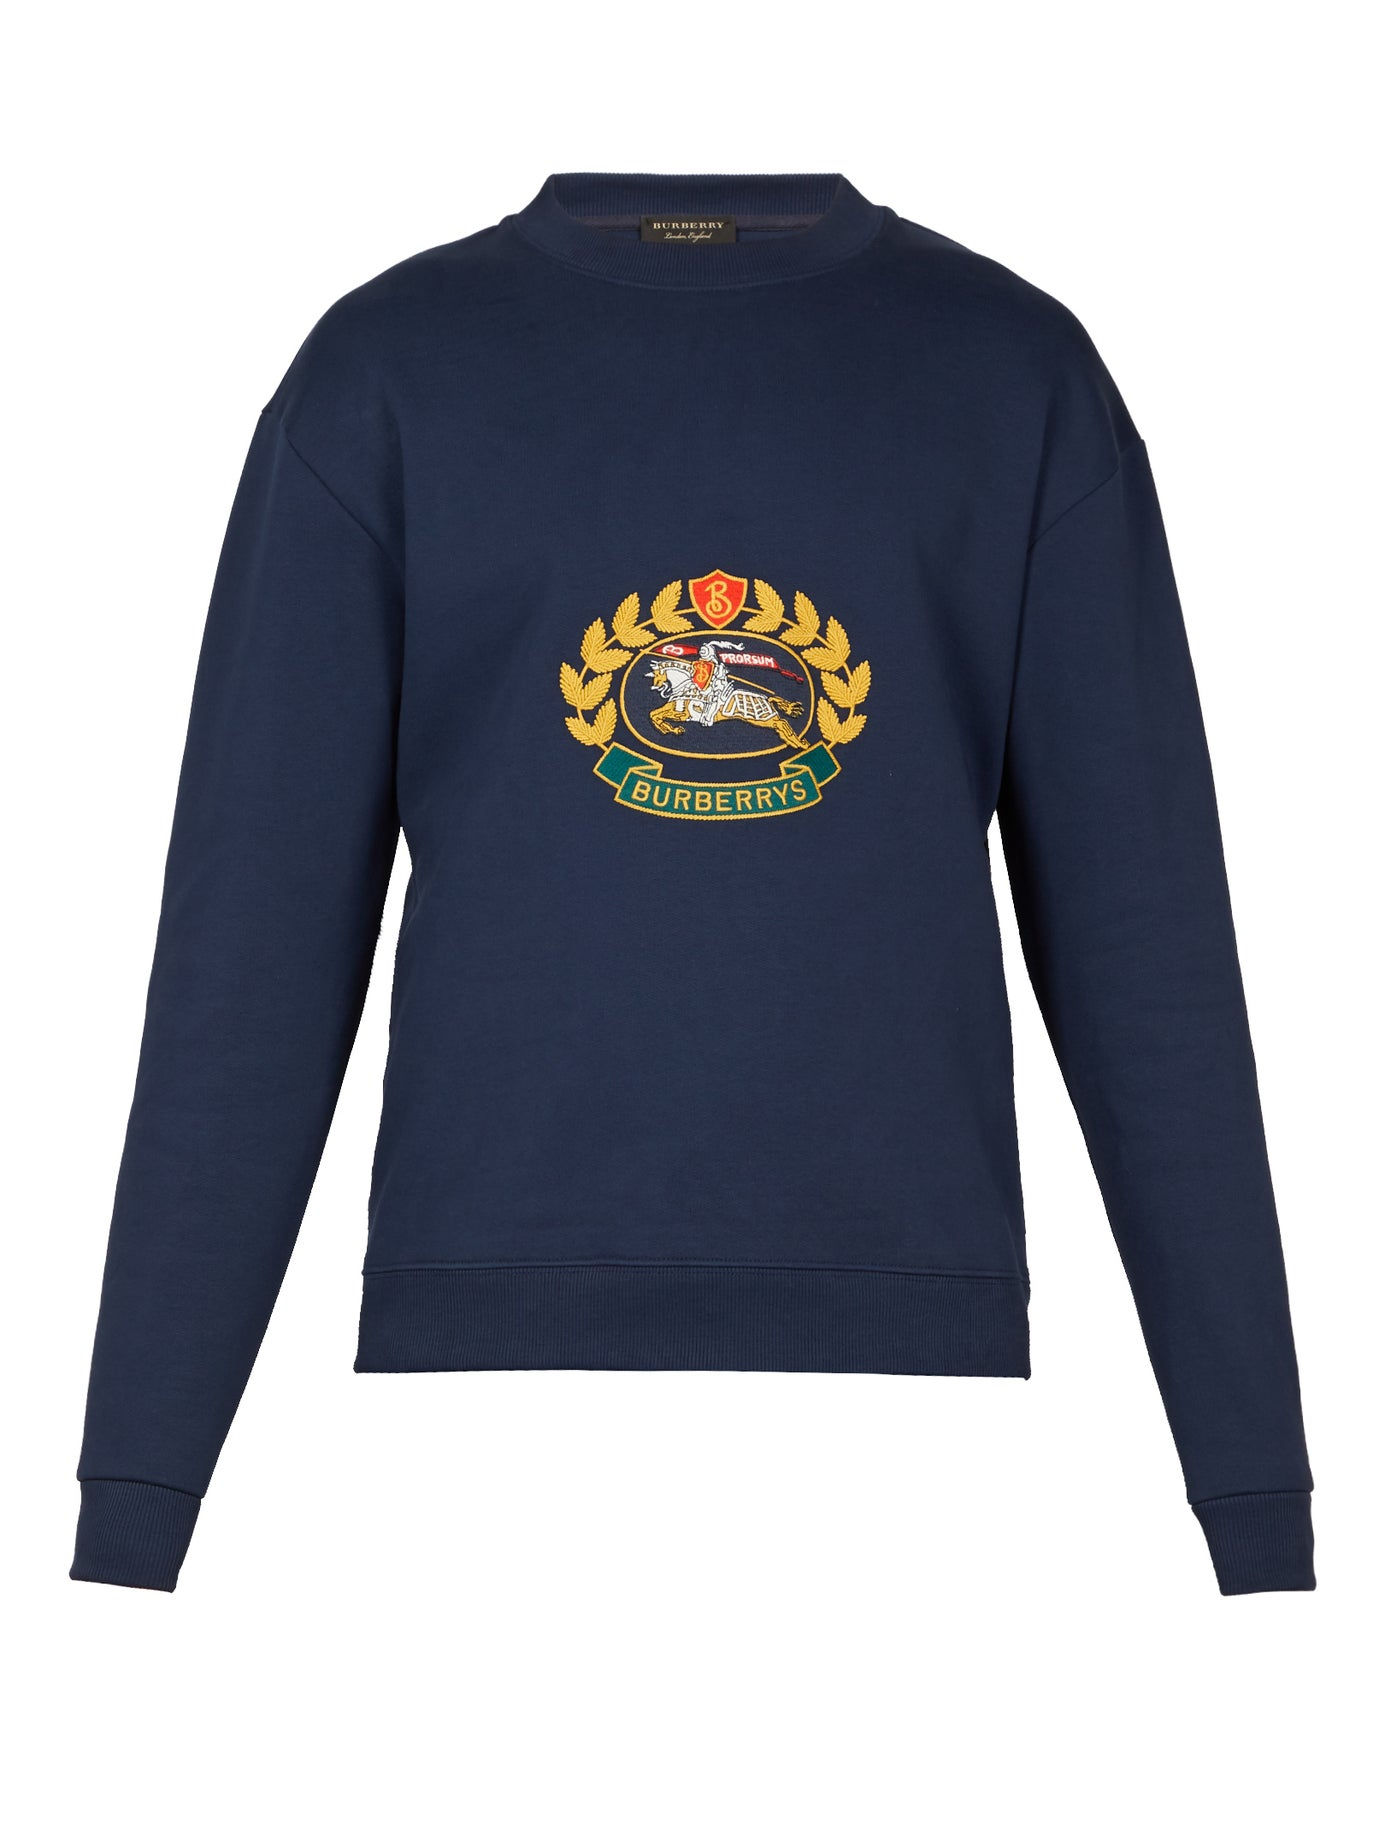 Burberry Crest Clouty Unisex Sweatshirt Logo Embroidered r4v5Crqxw